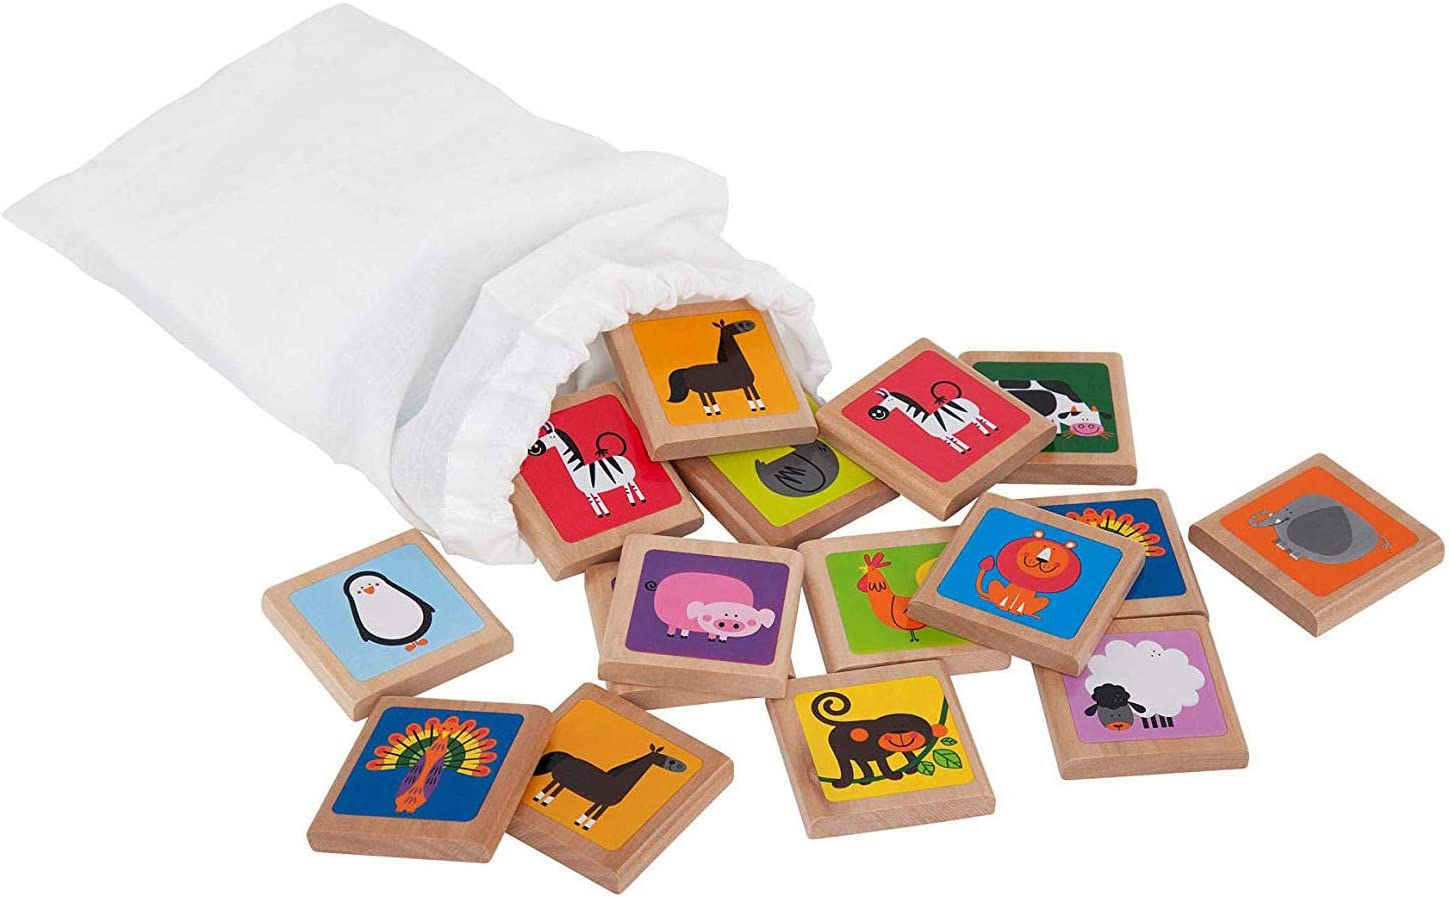 Wooden Memory Game Birthday Gift for Toddler Animals Matching Game Baptism Gift Montessori Game Wooden Puzzle for Kid Toddlers Game with Box